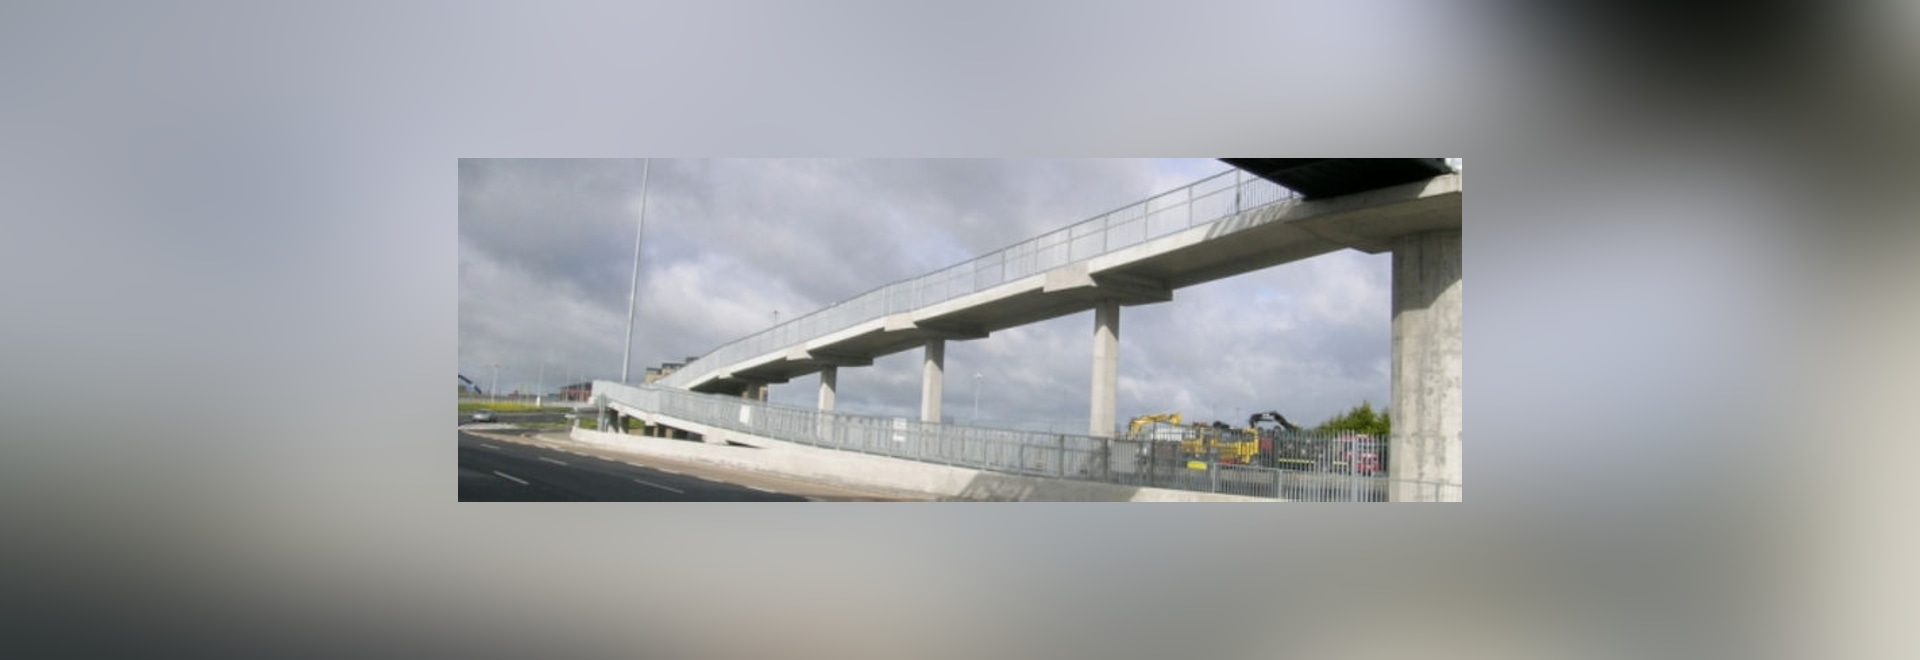 Precast Bridges New Precast Reinforced Concrete Slab For Pedestrian Bridge By